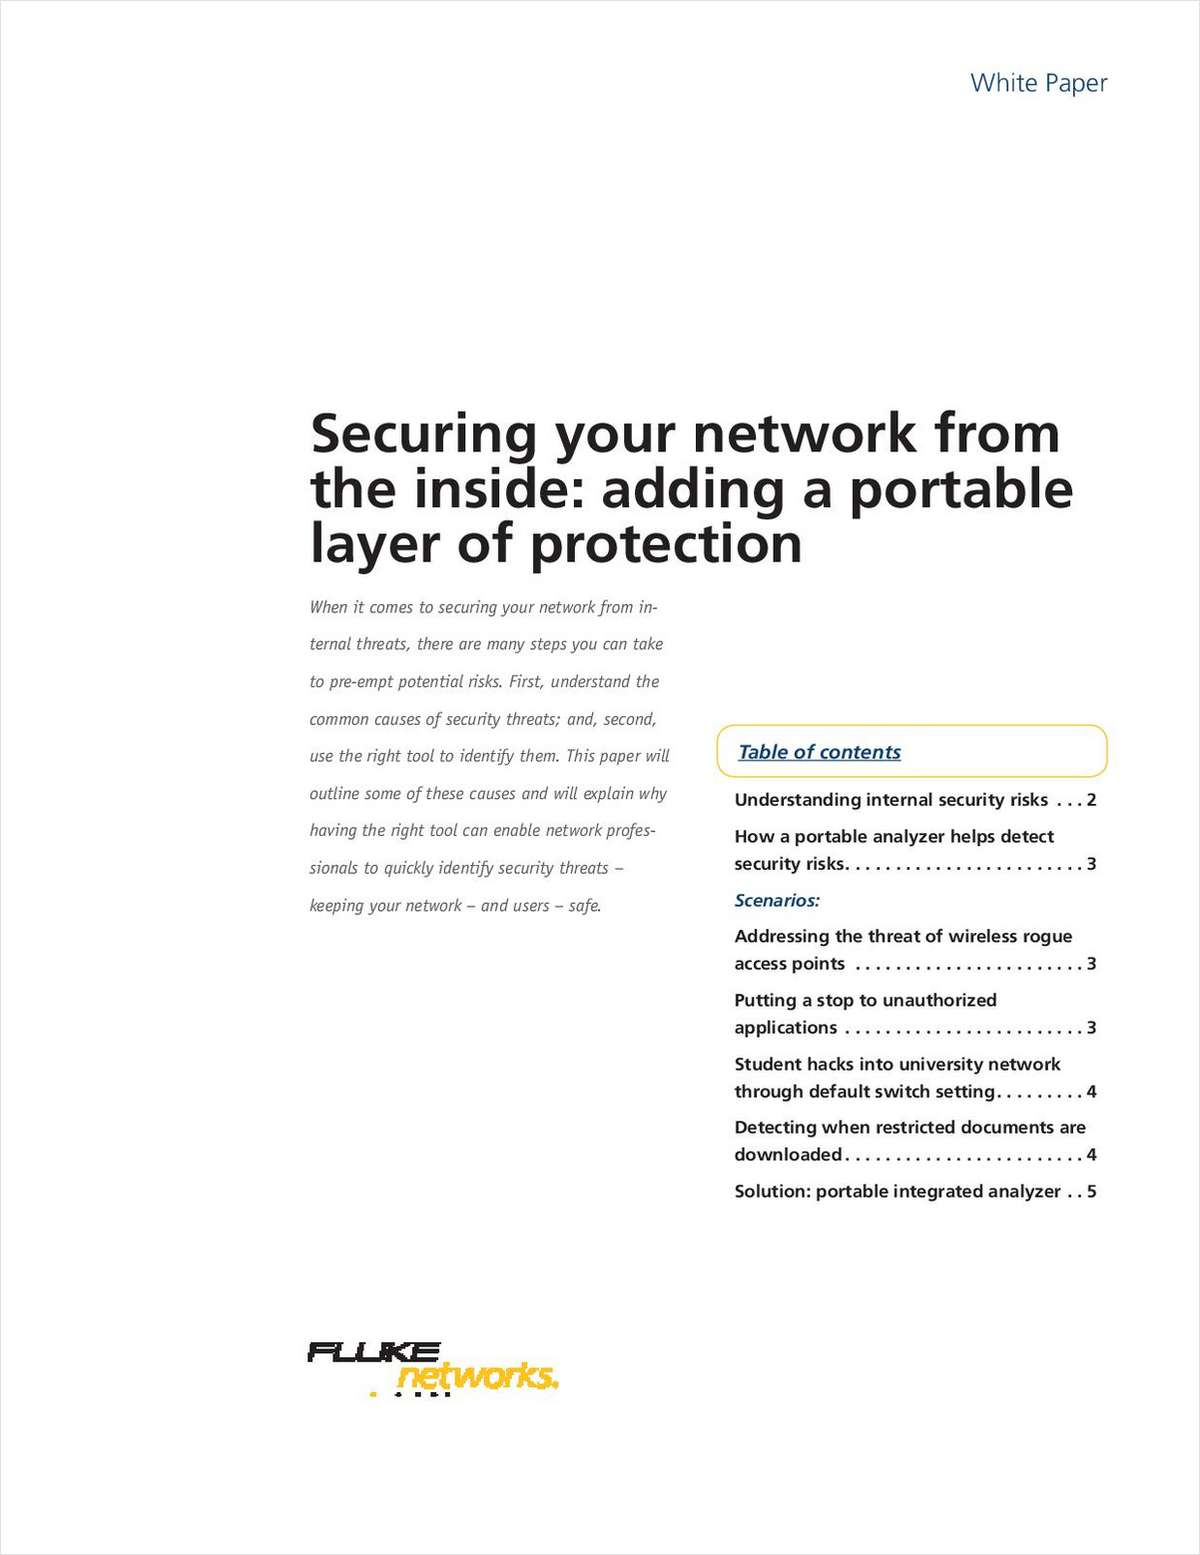 Securing Your Network from the Inside